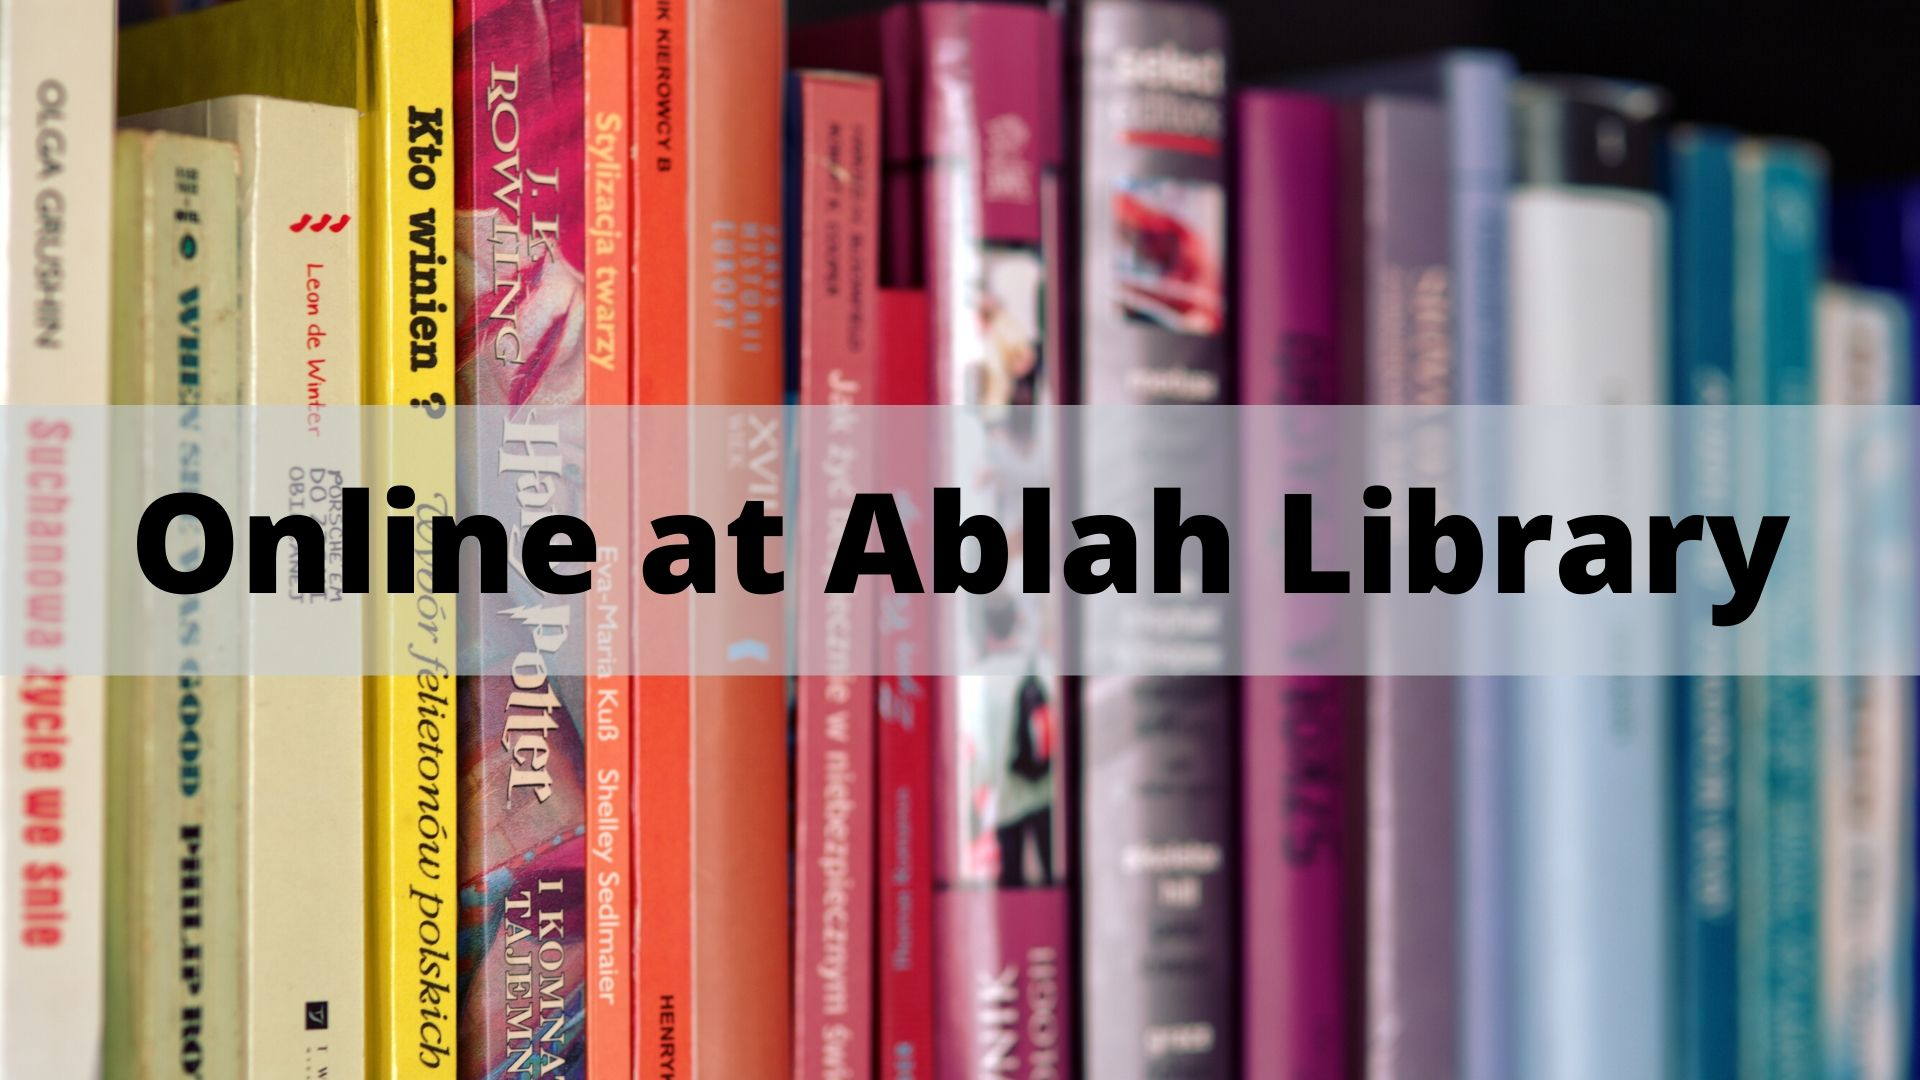 Online at Ablah Library